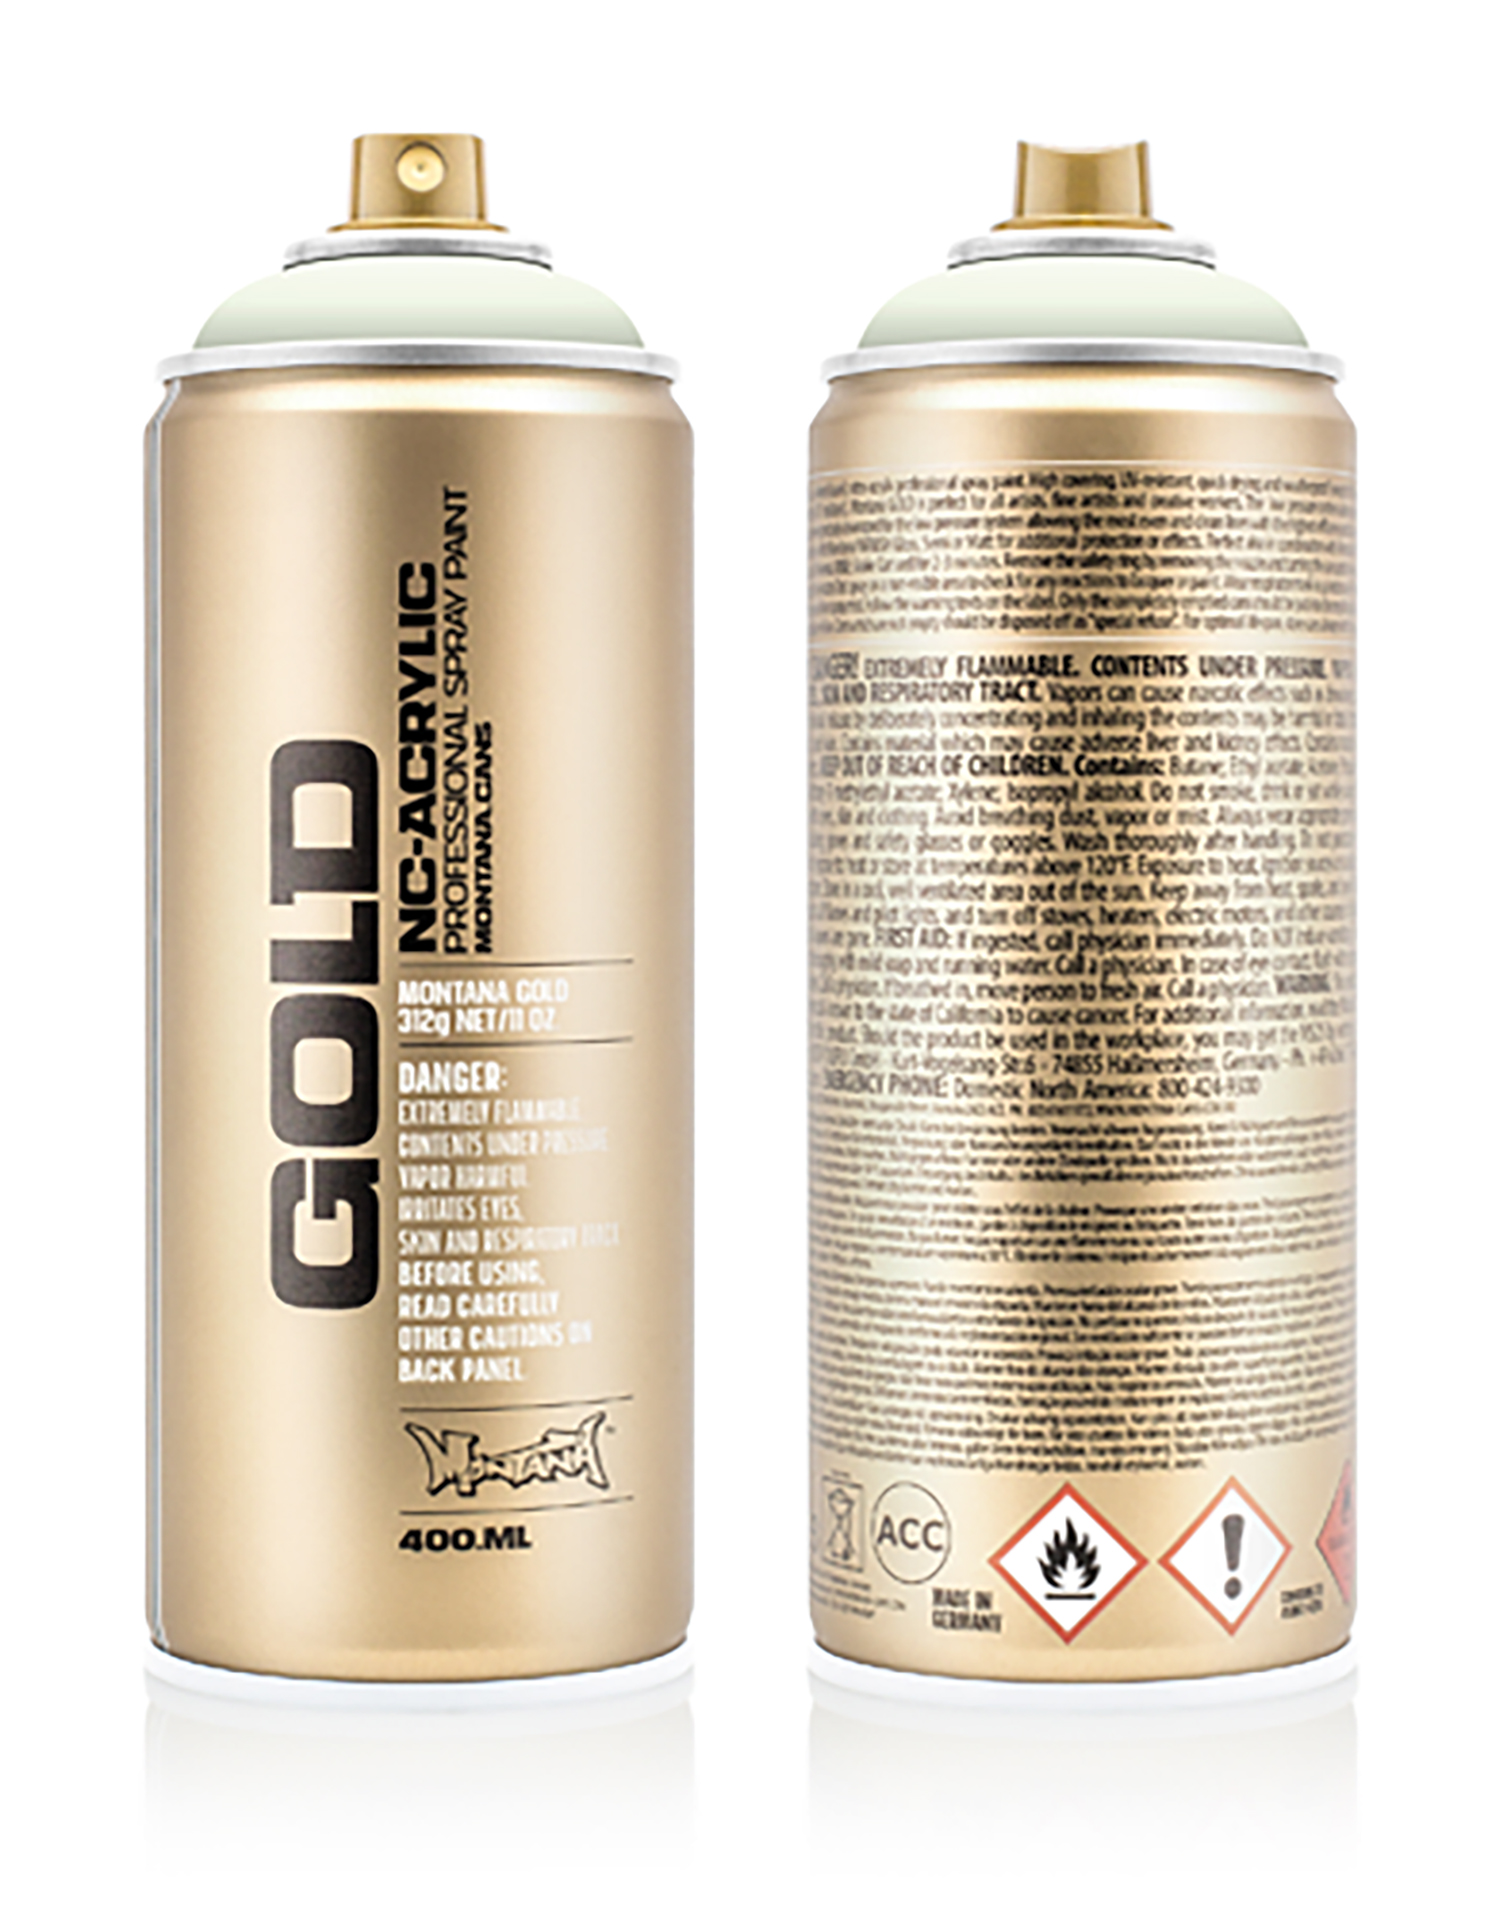 MONTANA-GOLD-SPRAY-400ML-G-6100